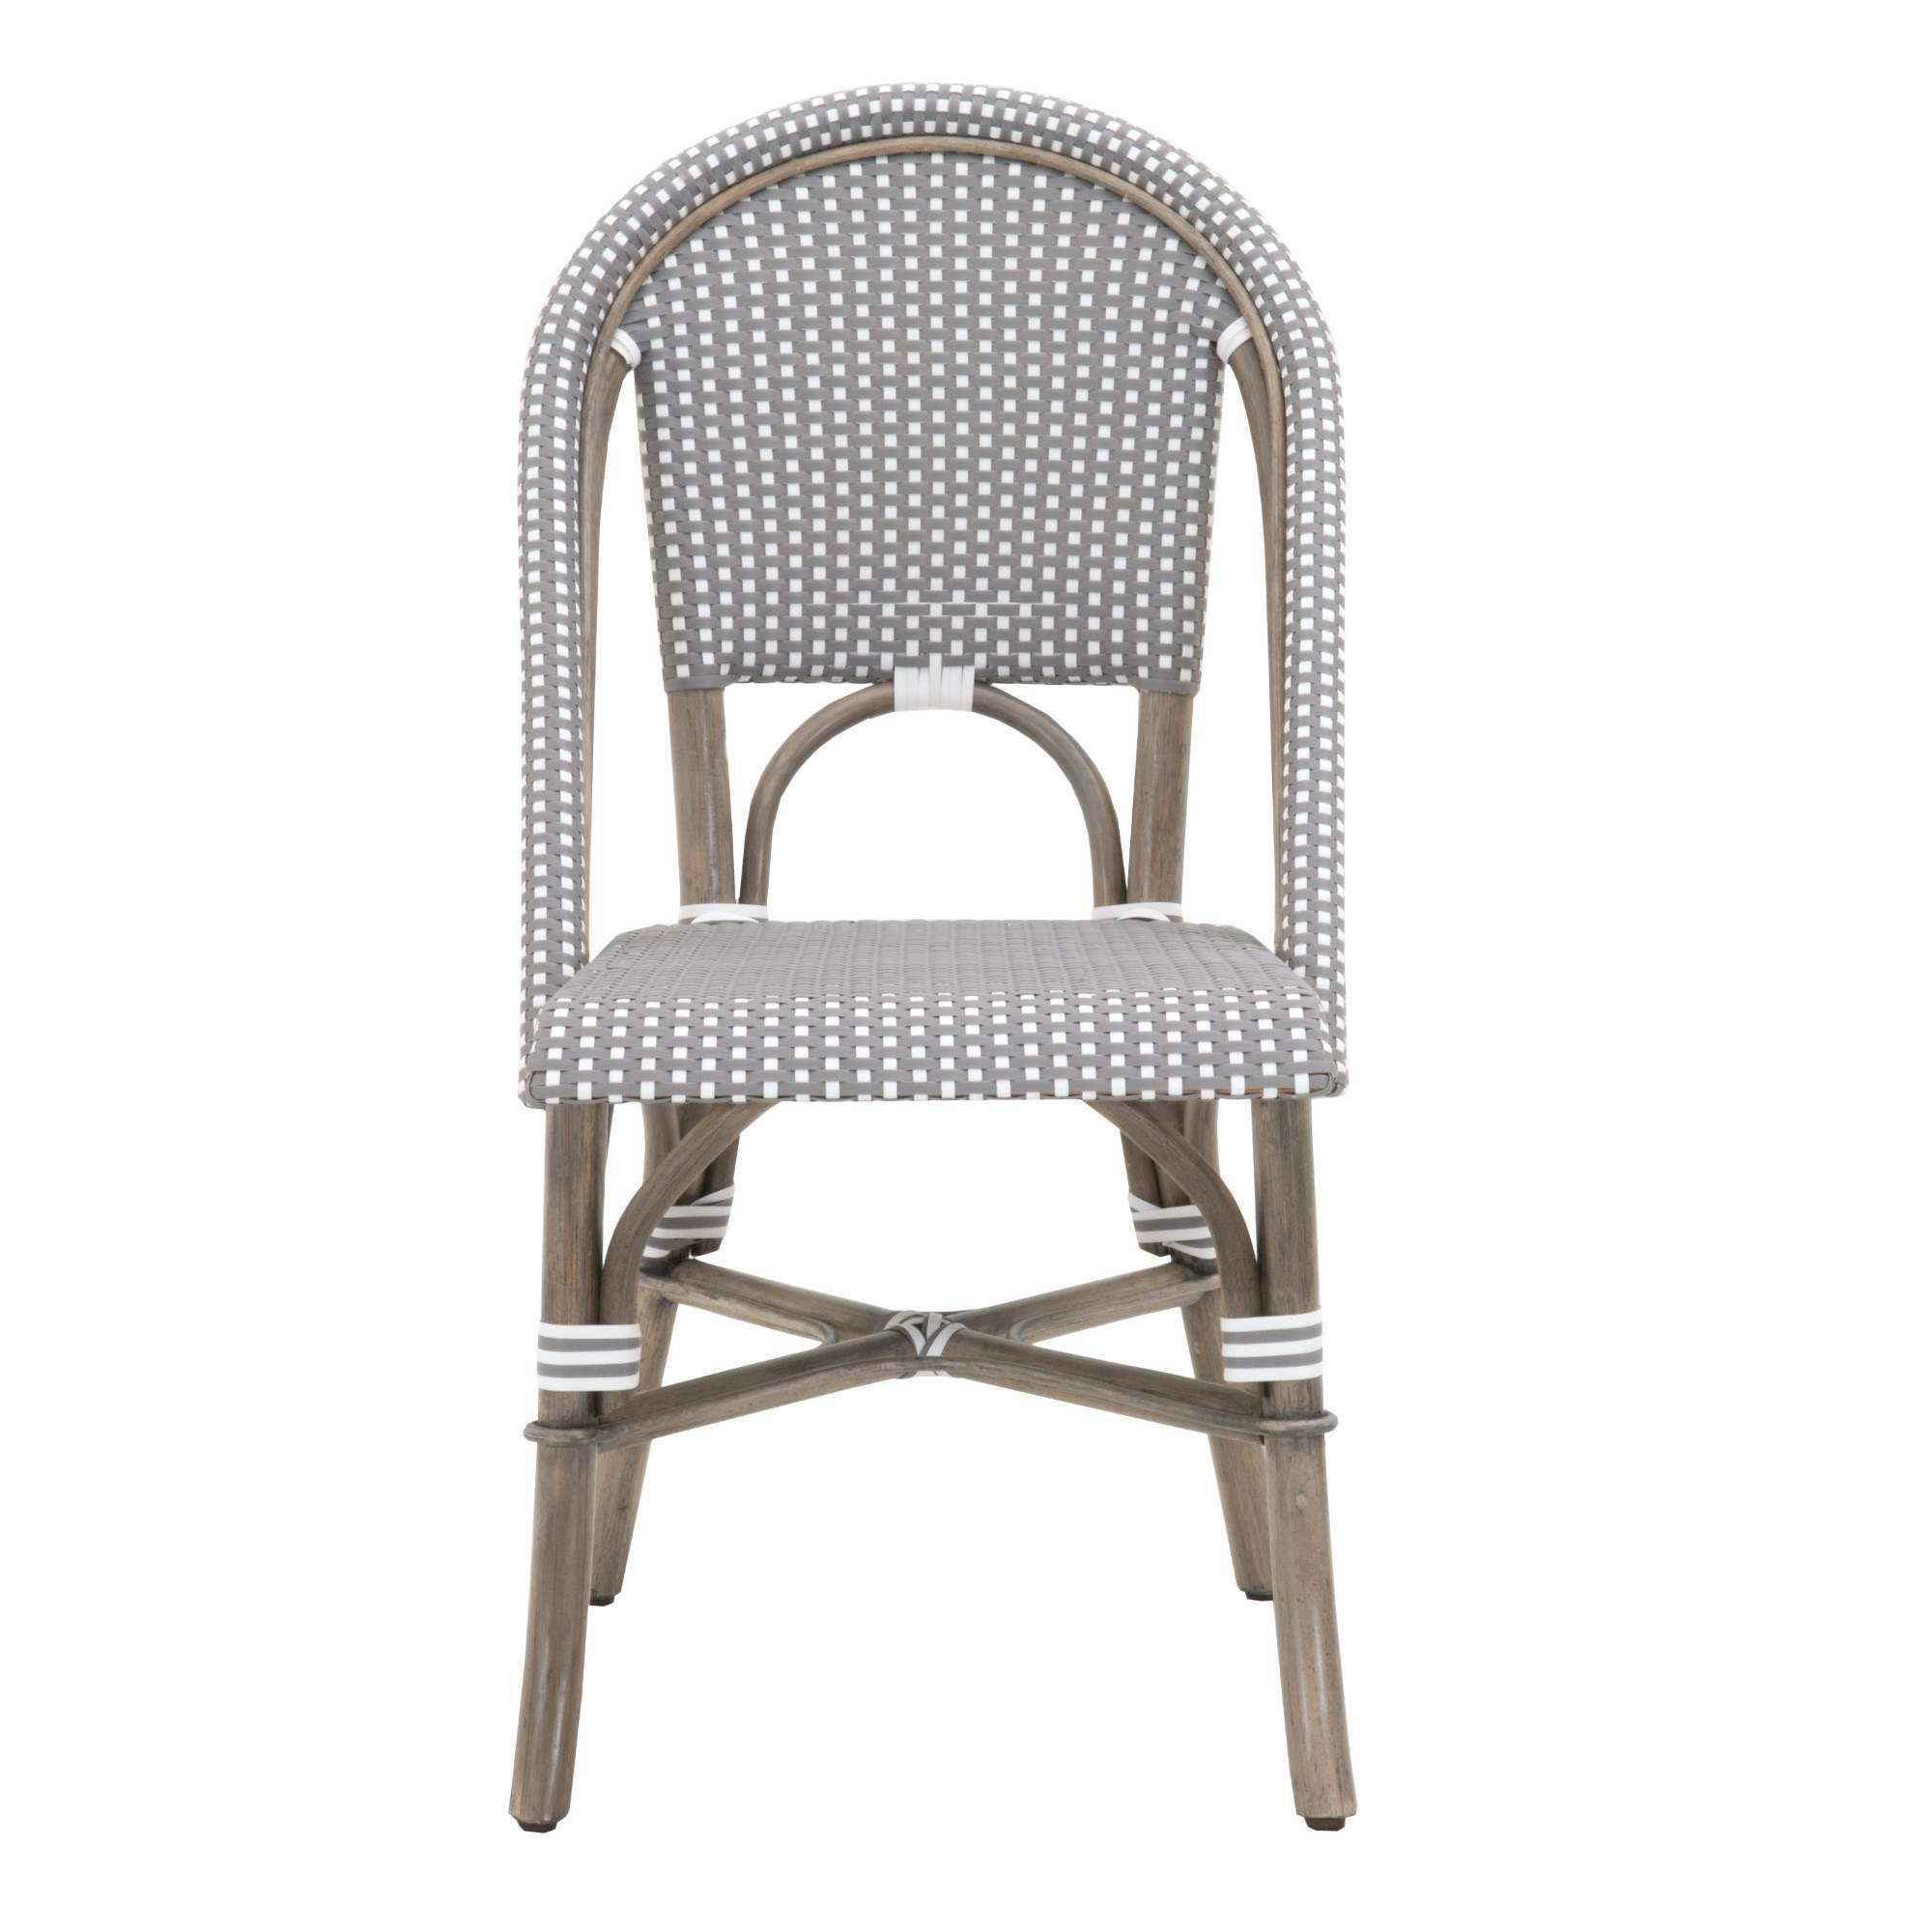 Excellent Paris Dining Chair Set Of 2 In Gray White Check Andrewgaddart Wooden Chair Designs For Living Room Andrewgaddartcom